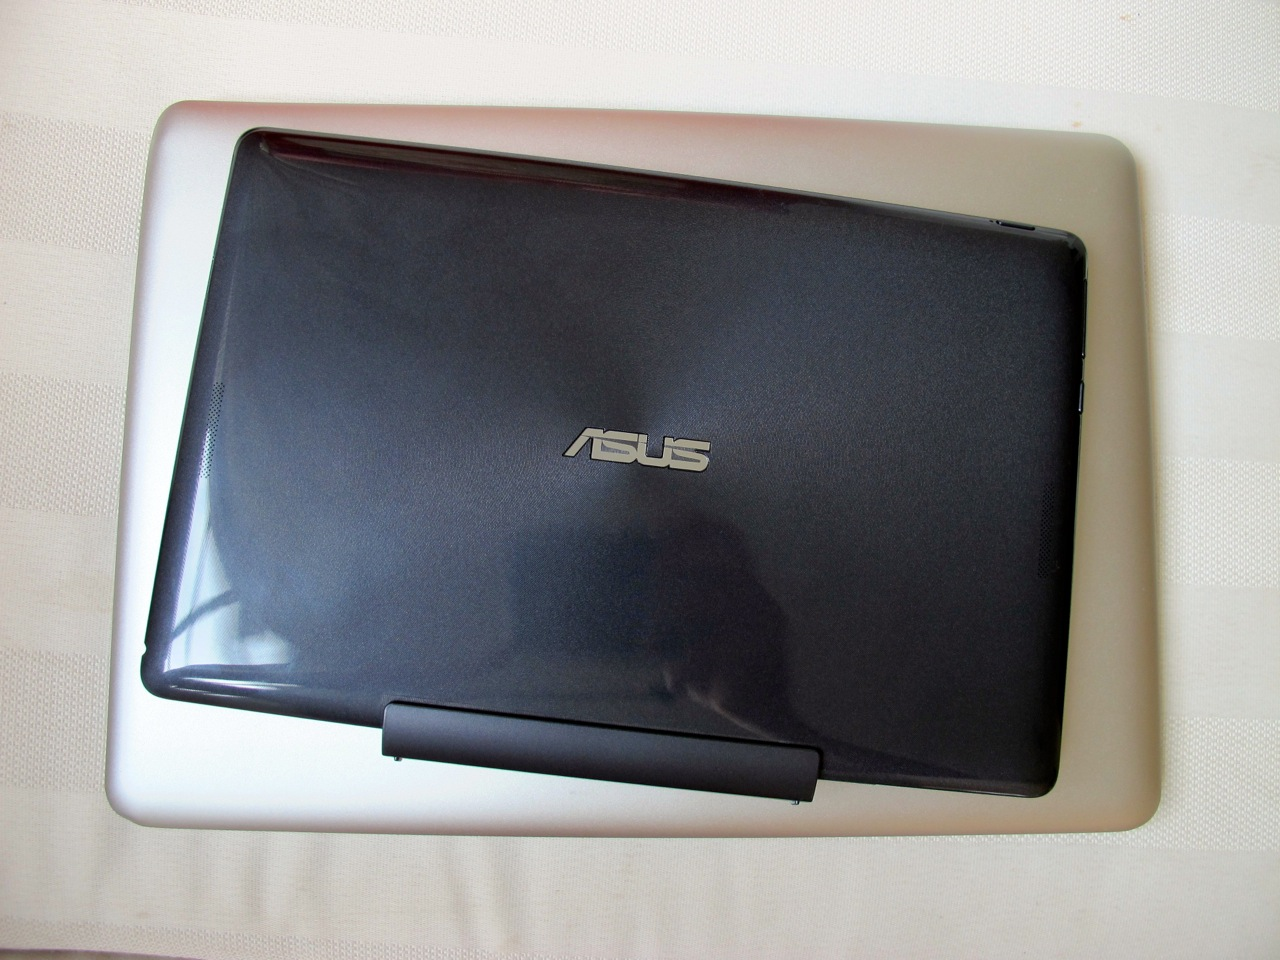 Asus vs. Macbook